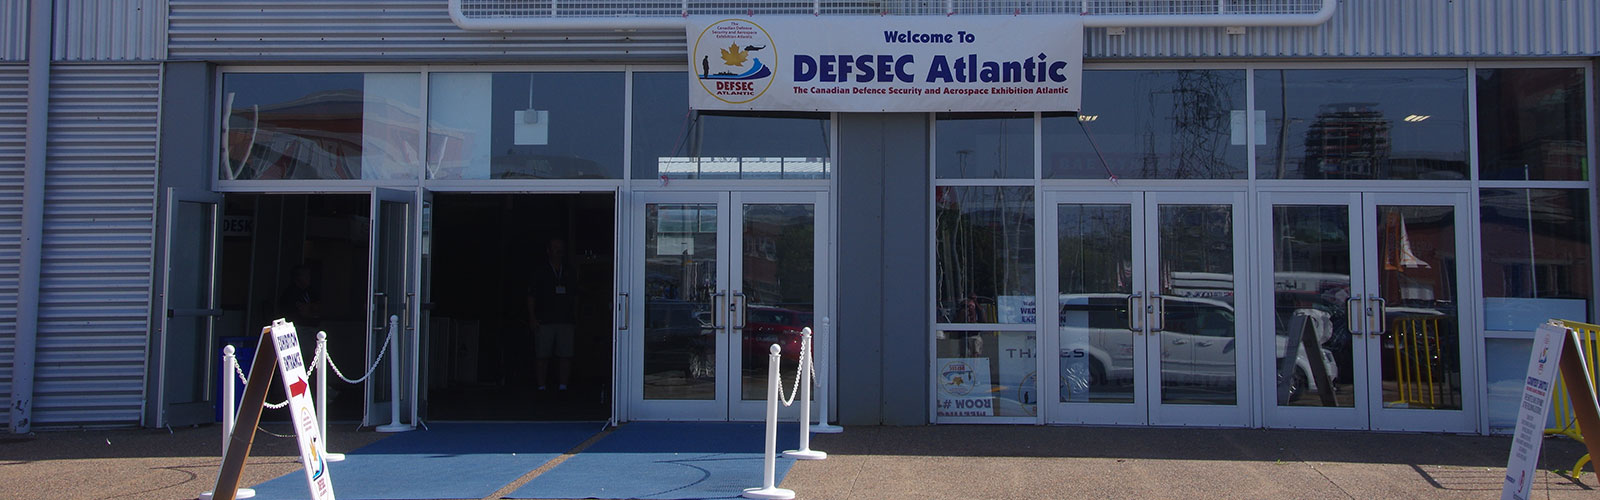 DEFSEC Atlantic 2019 :: Oct 1-3, 2019 :: Halifax, Nova Scotia, Canada ::